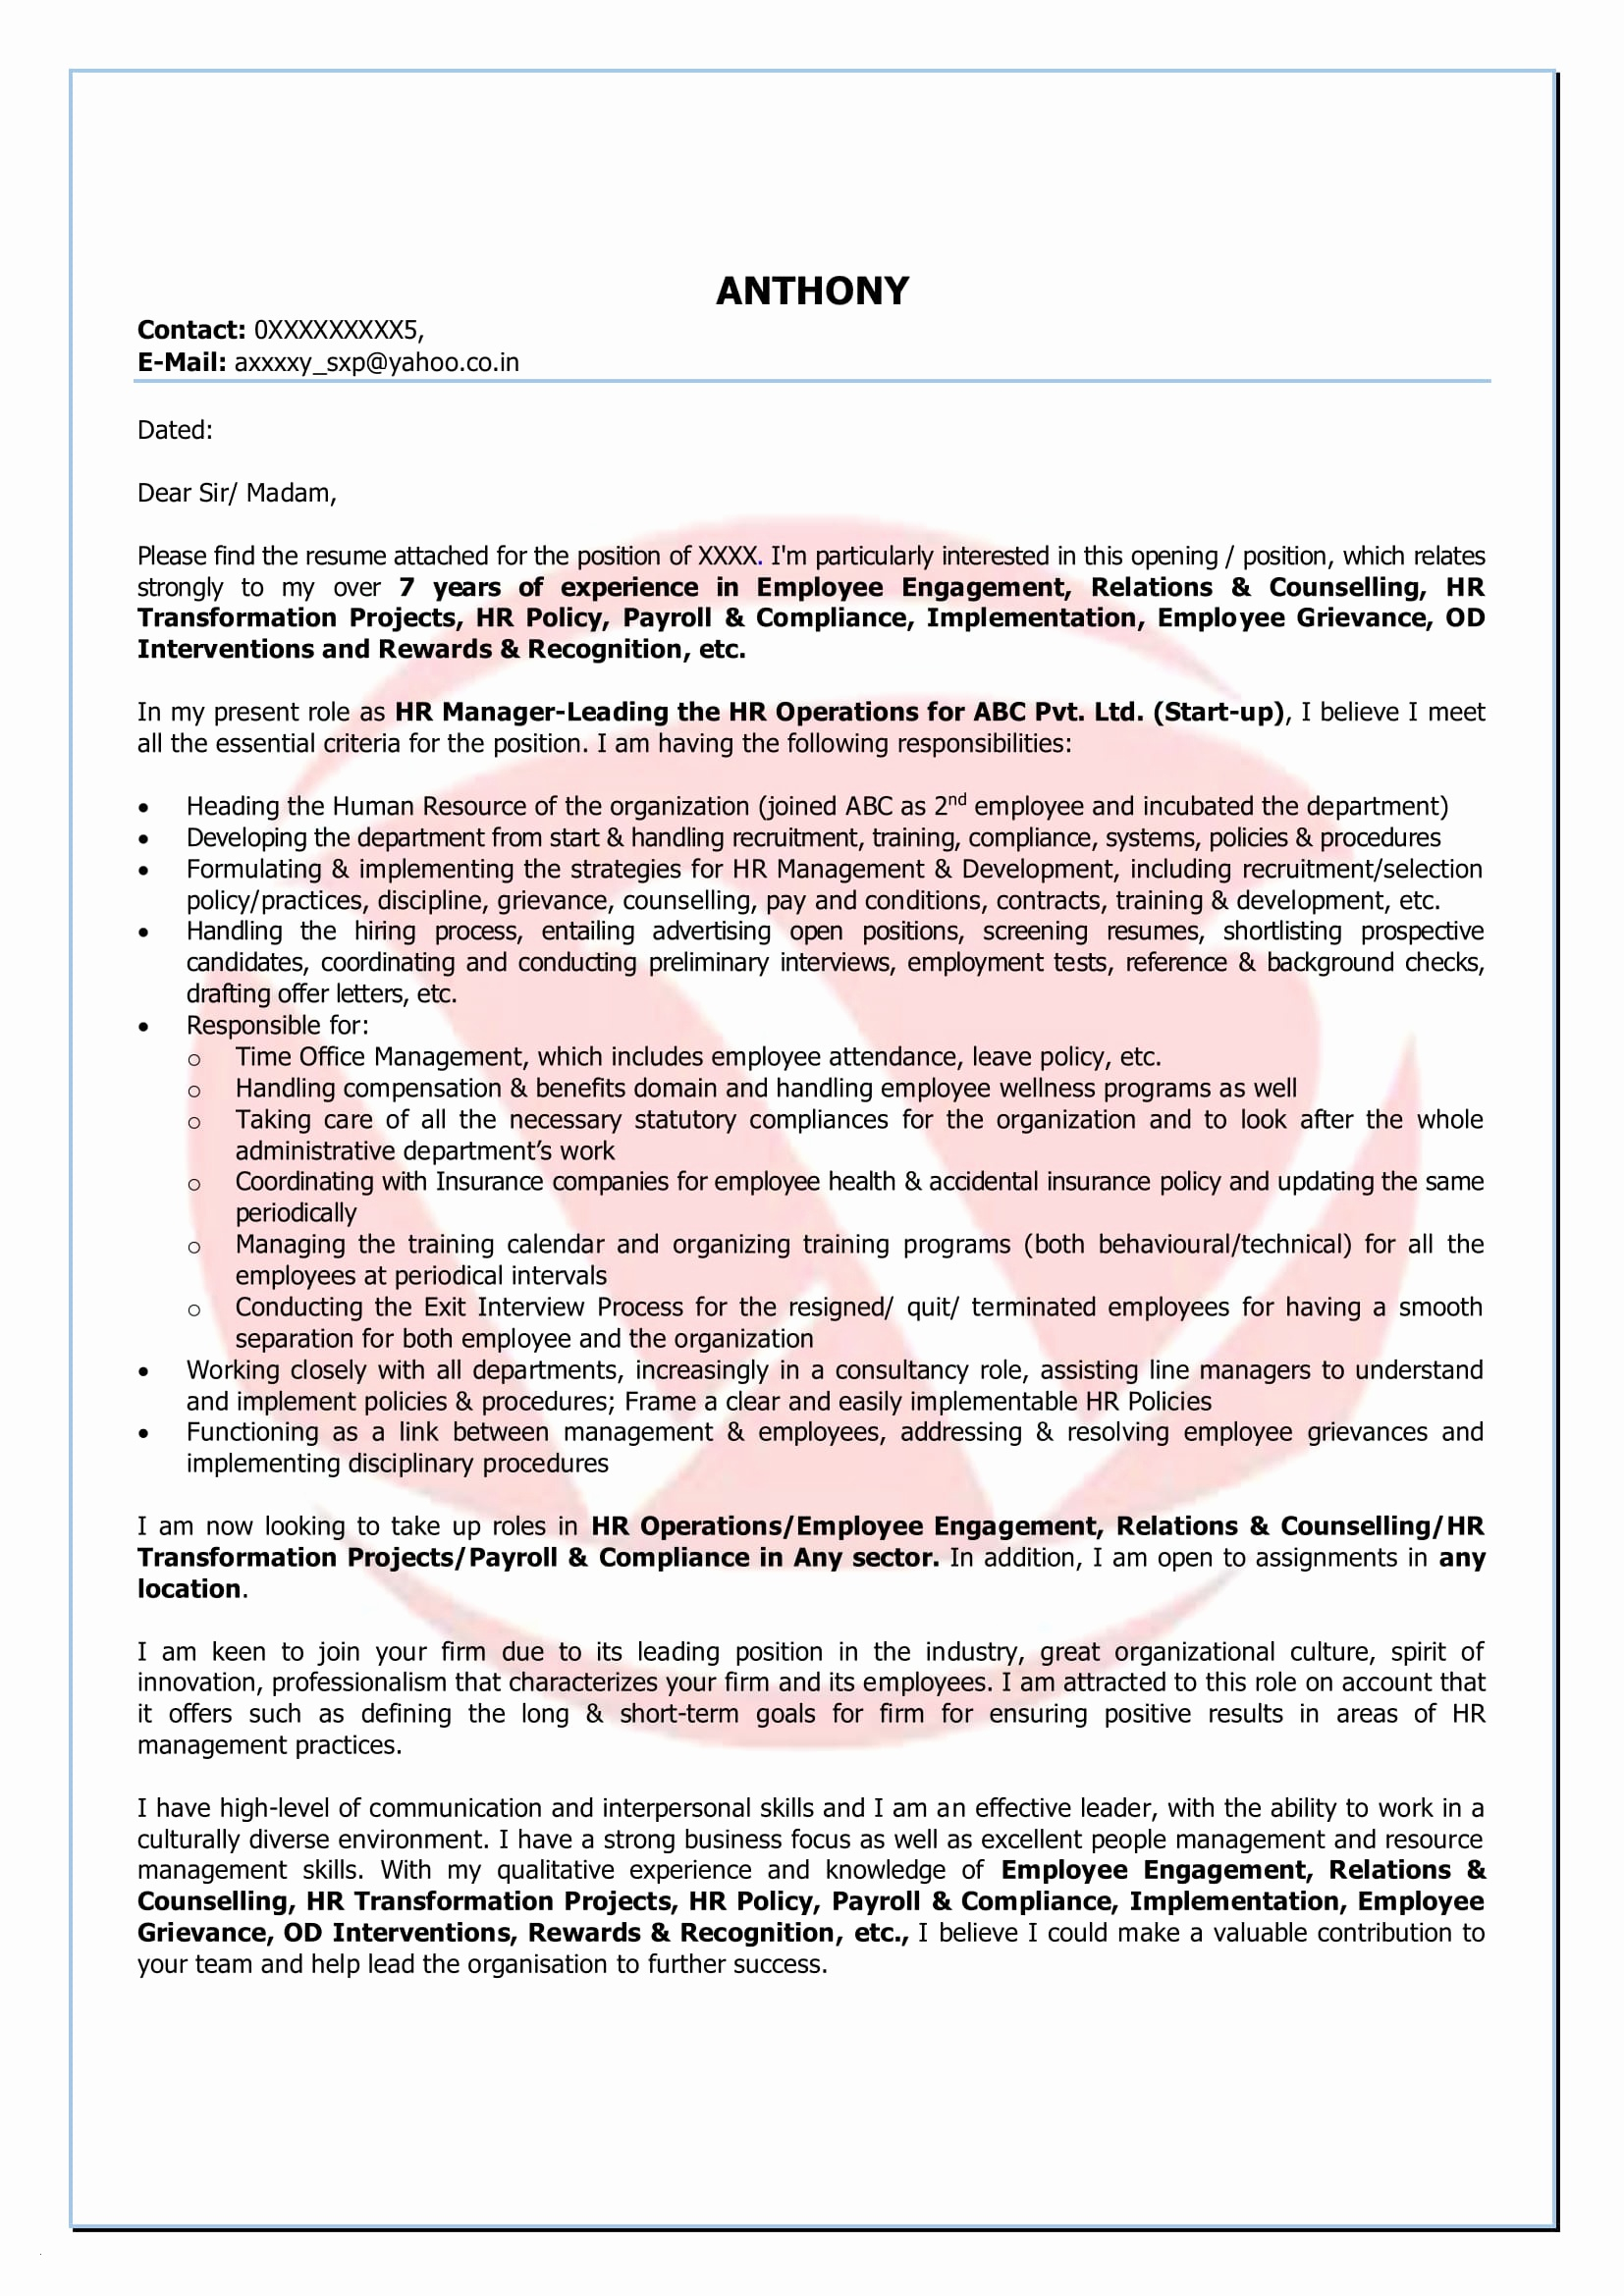 Letter Of Interest for Employment Template - Simple Resume Cover Letter format Legalsocialmobilitypartnership